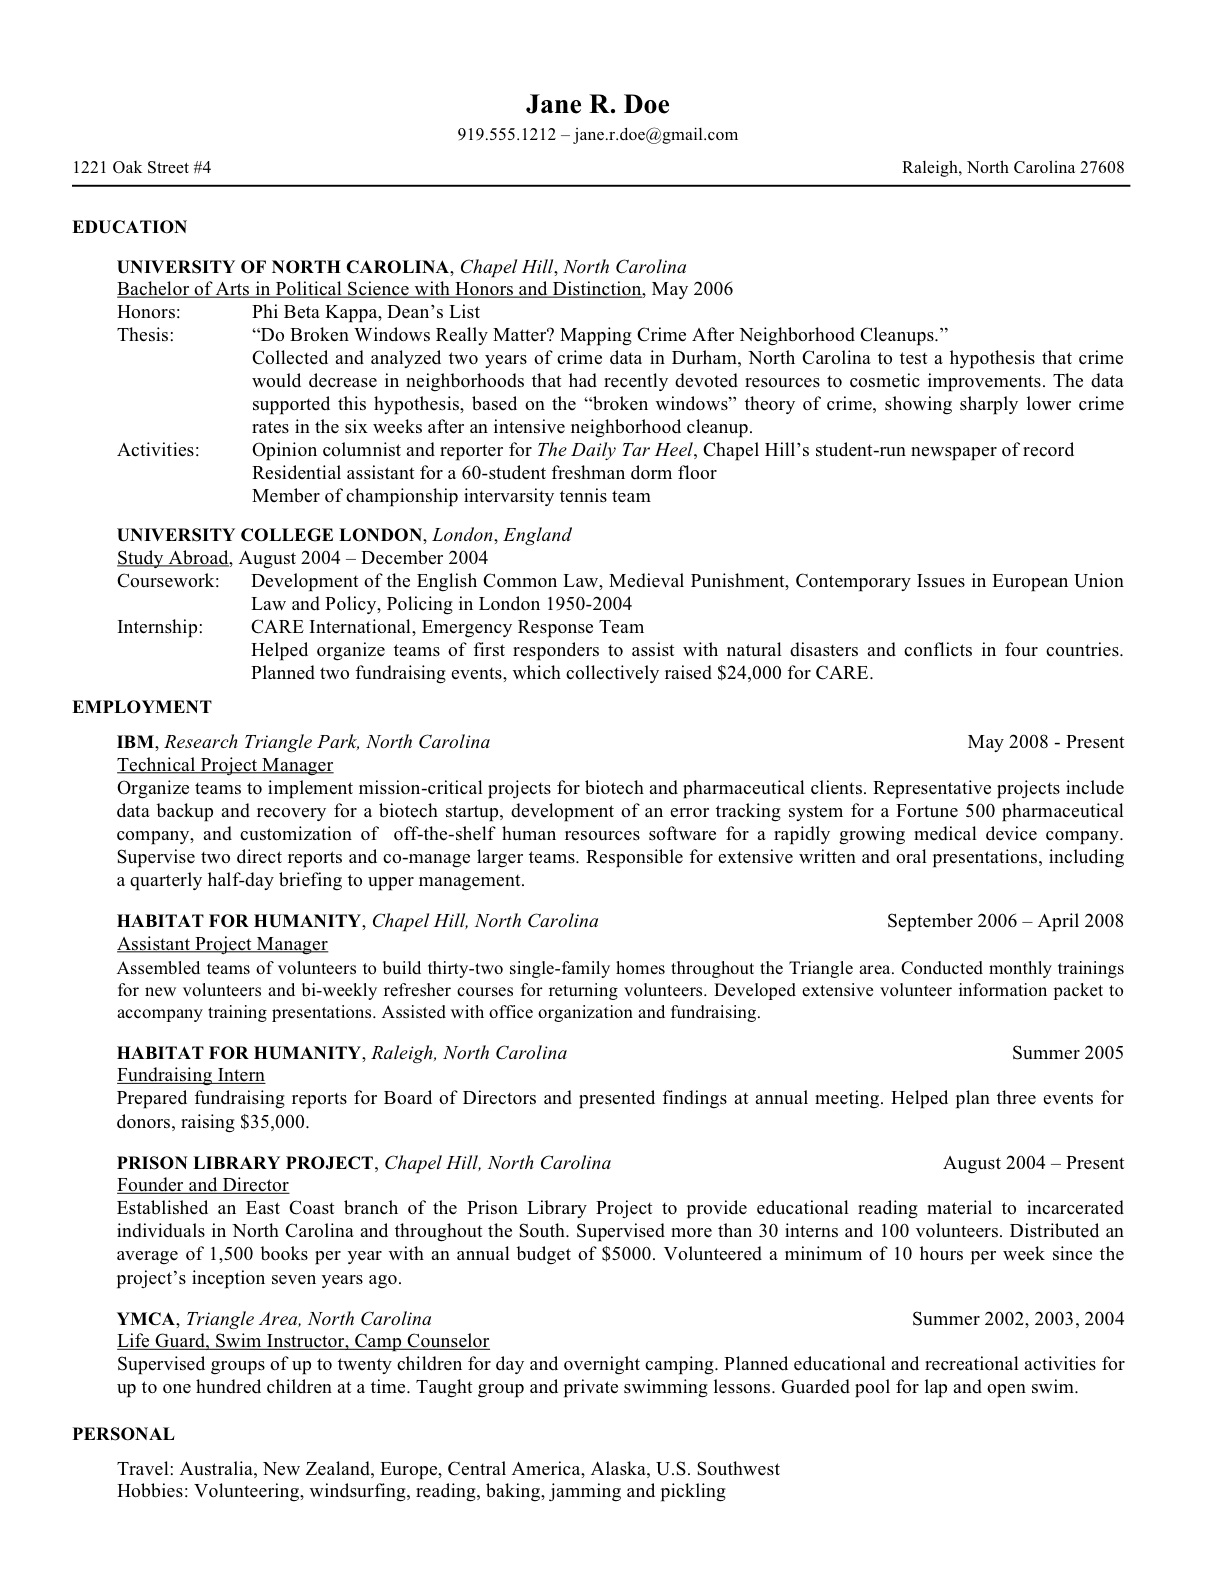 Law Resume sample law school application resume 1 Janes Revised Resume